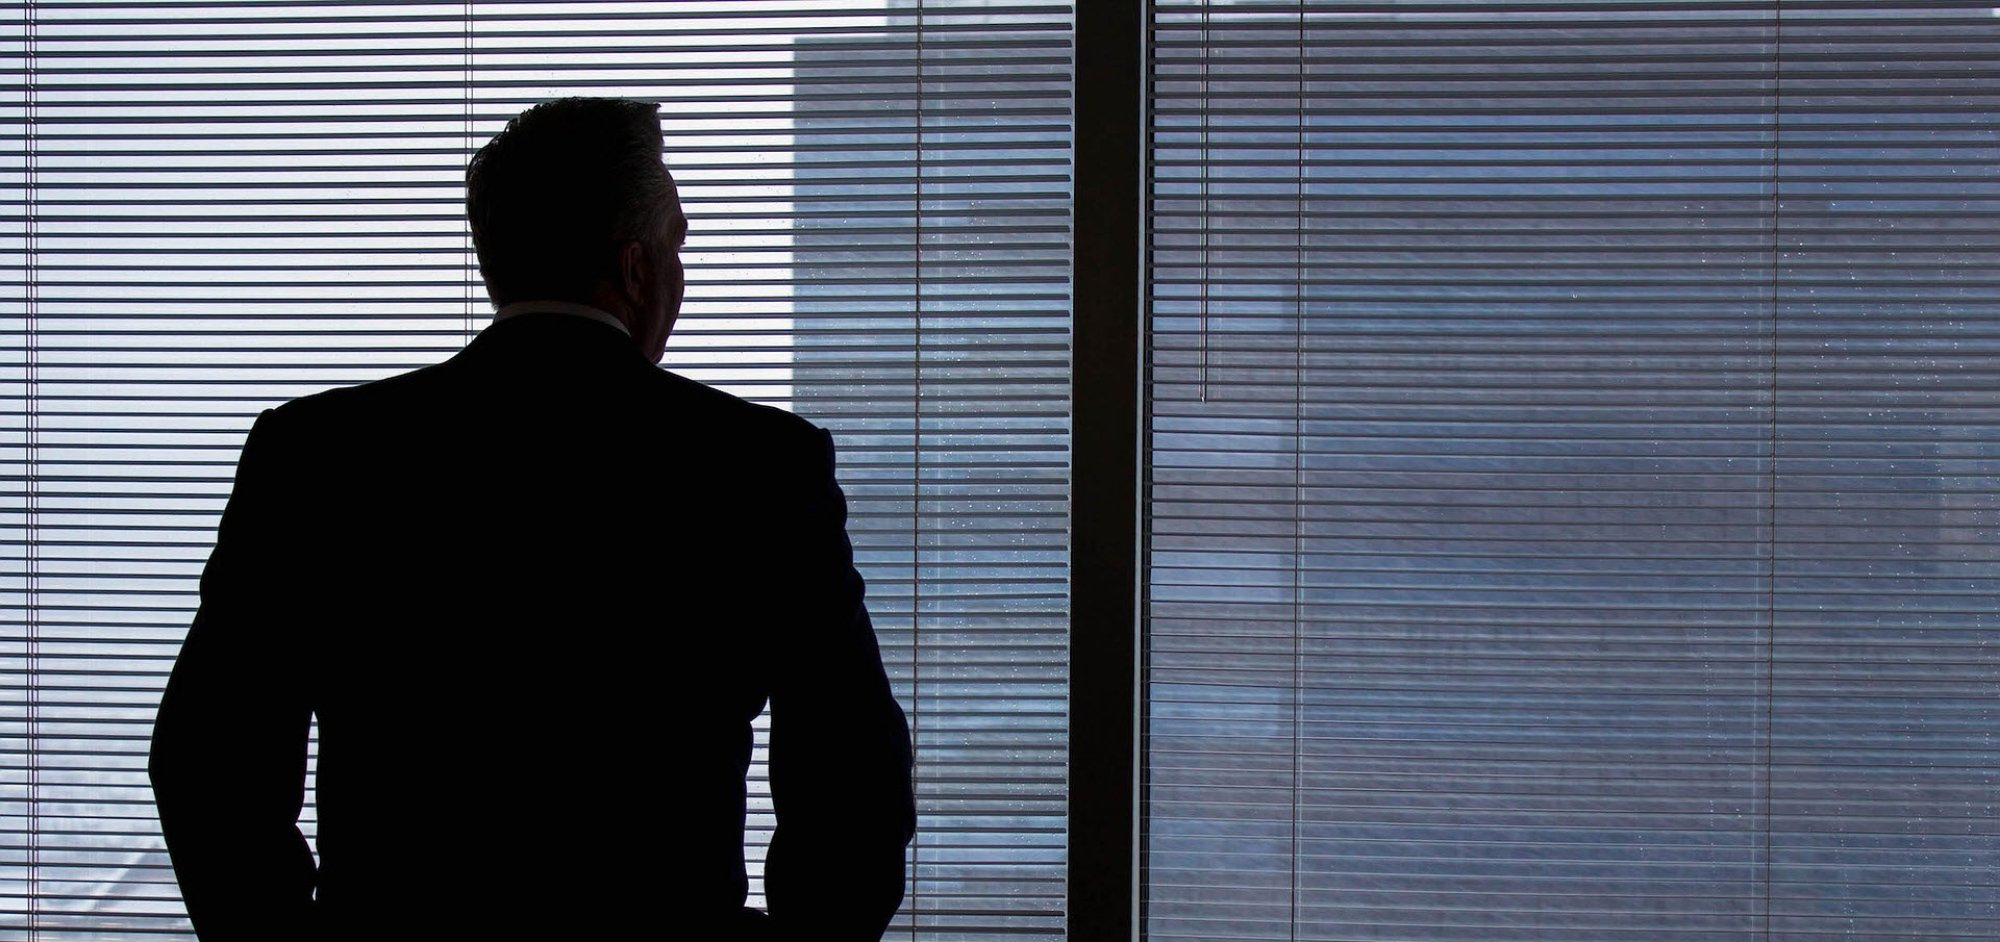 $325,000 wrongful termination settlement offer in an employment case